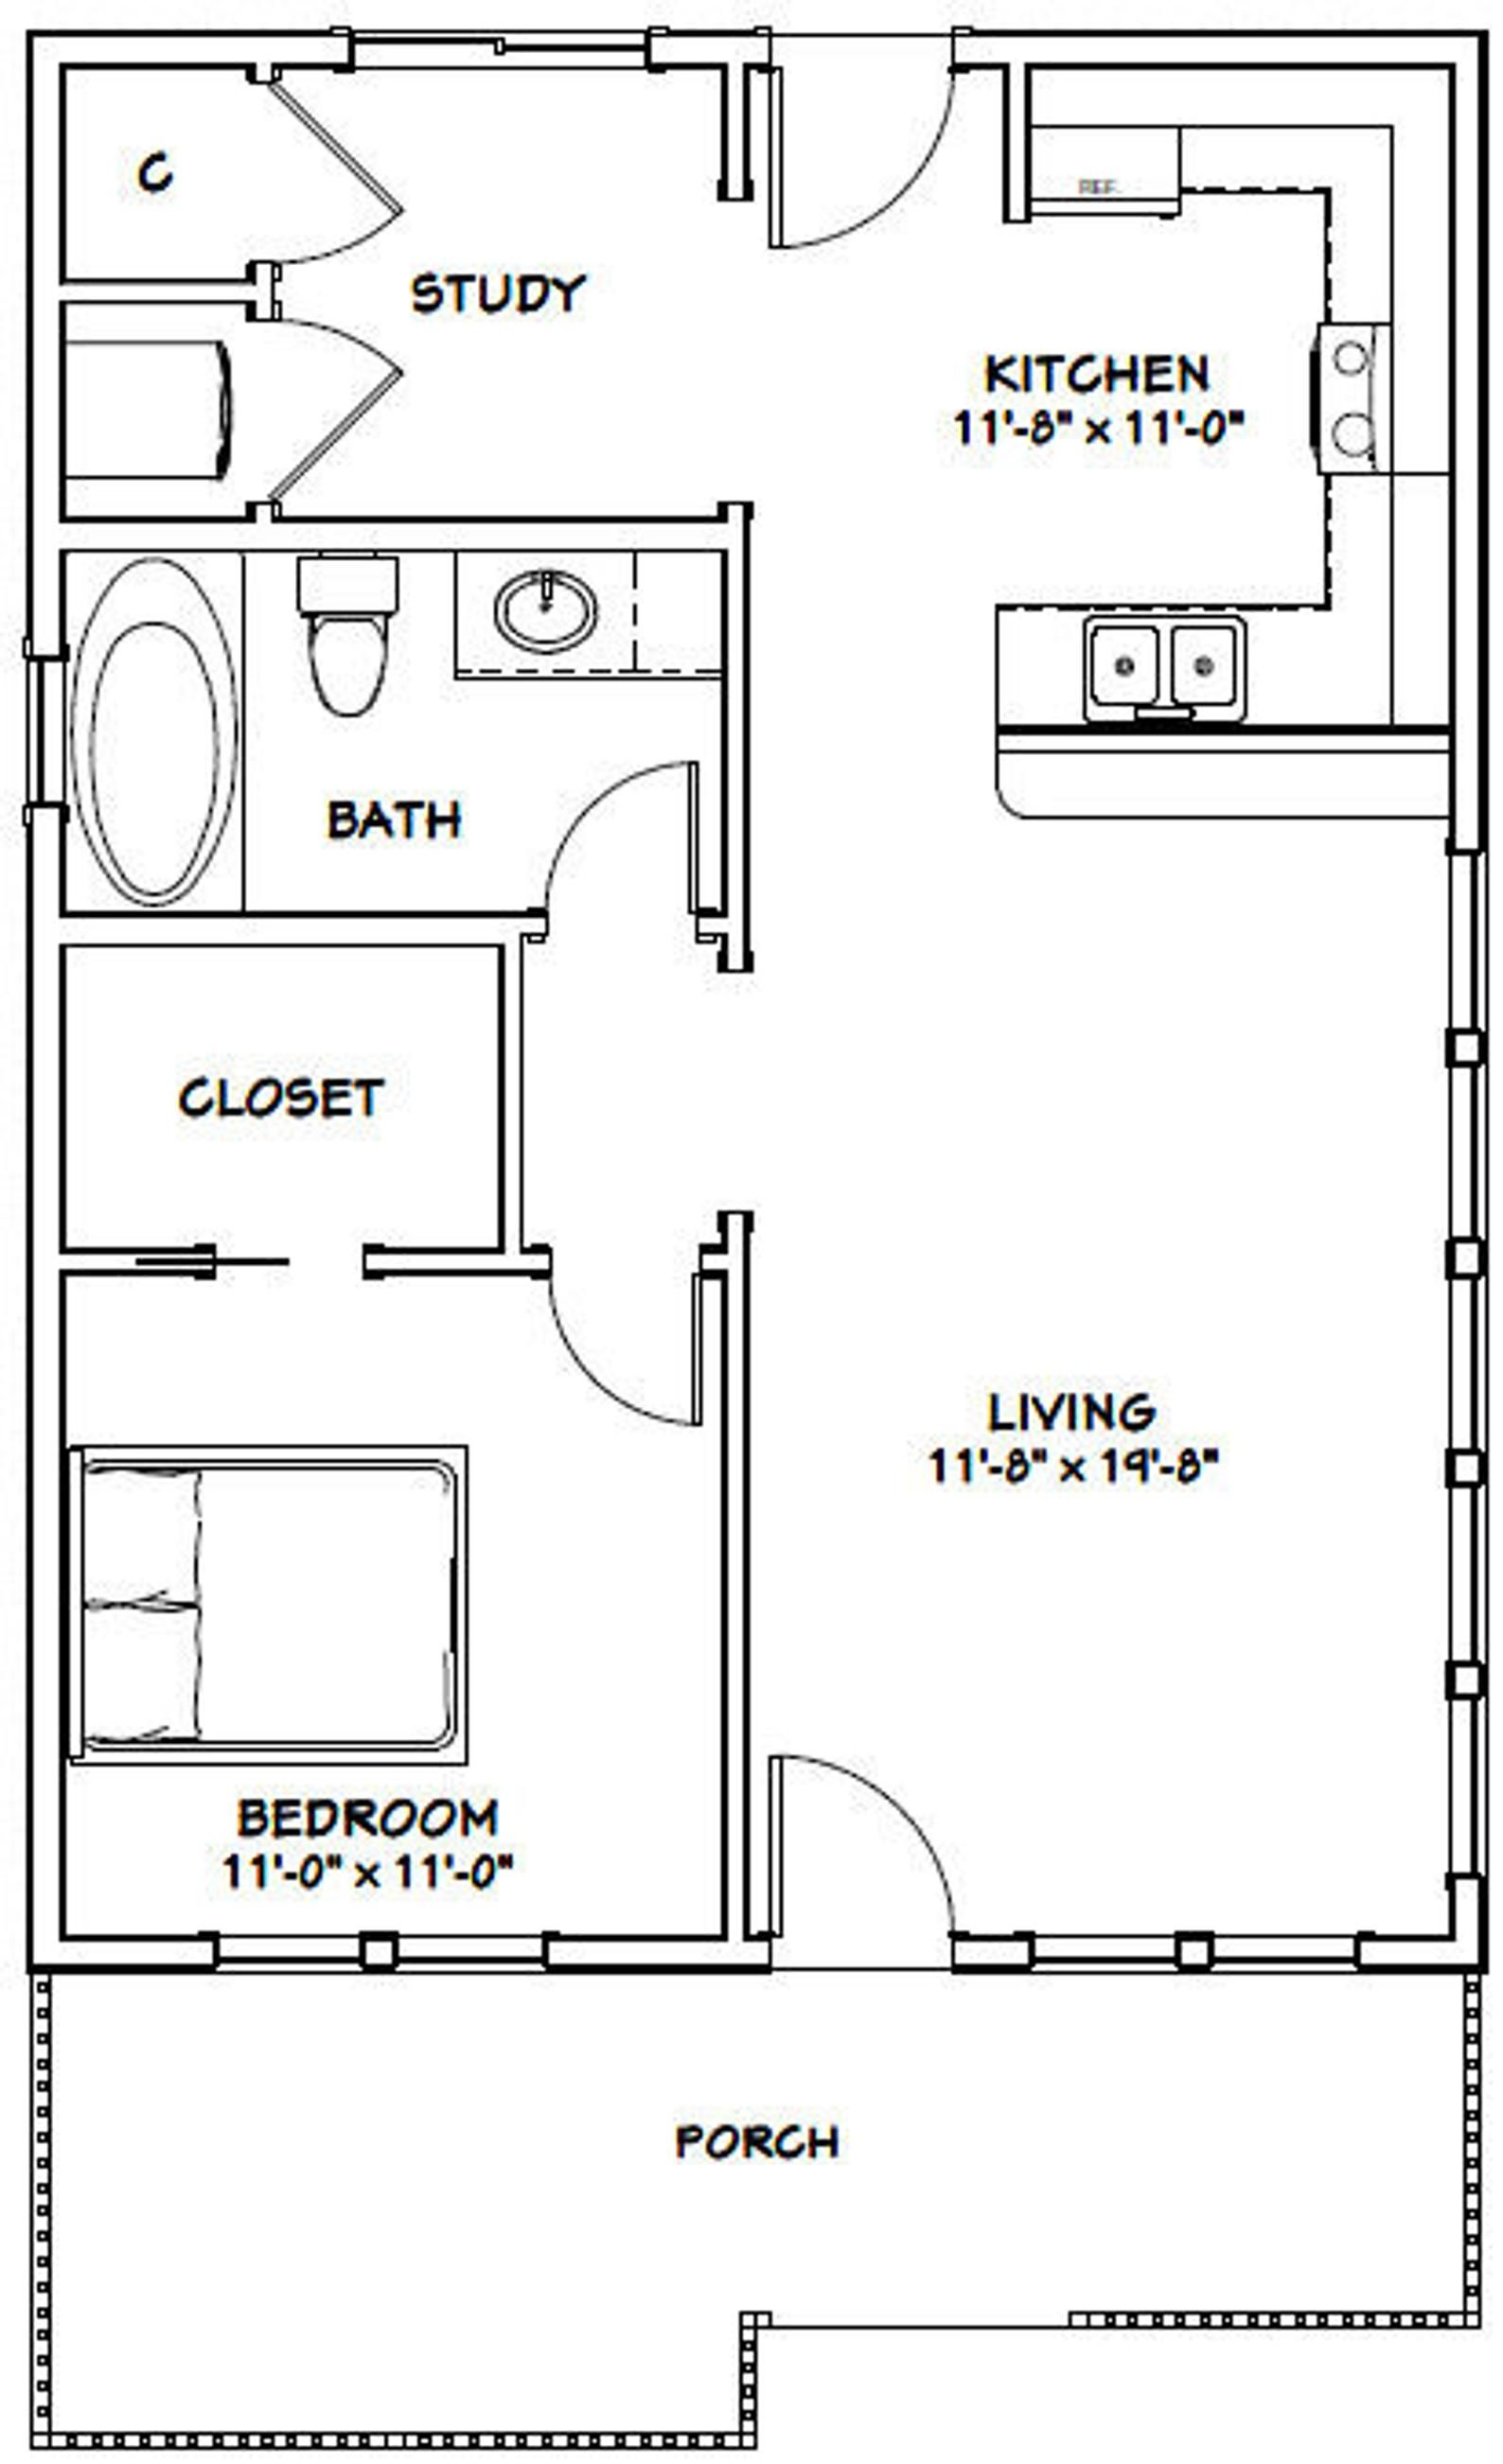 24x32 House 1 Bedroom 1 Bath 768 Sq Ft Pdf Floor Plan Etsy In 2020 One Bedroom House House Plans Tiny House Floor Plans